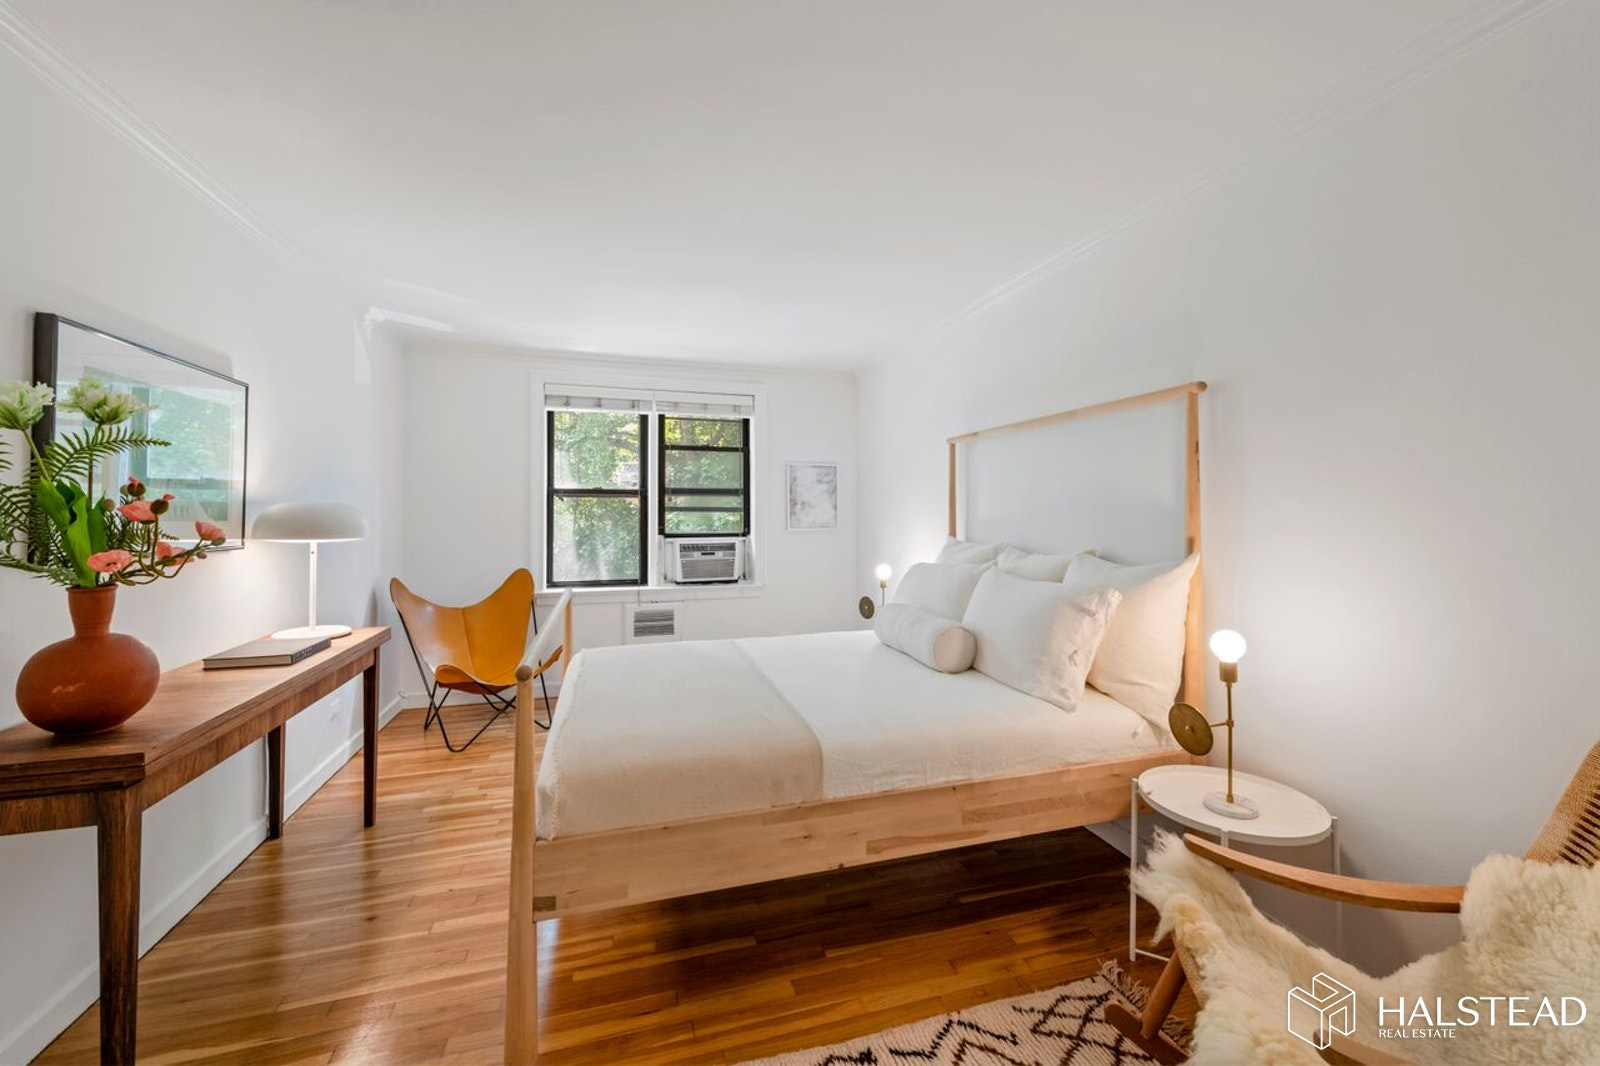 337 East 50th Street 2east, Midtown East, NYC, 10022, $899,500, Property For Sale, Halstead Real Estate, Photo 6